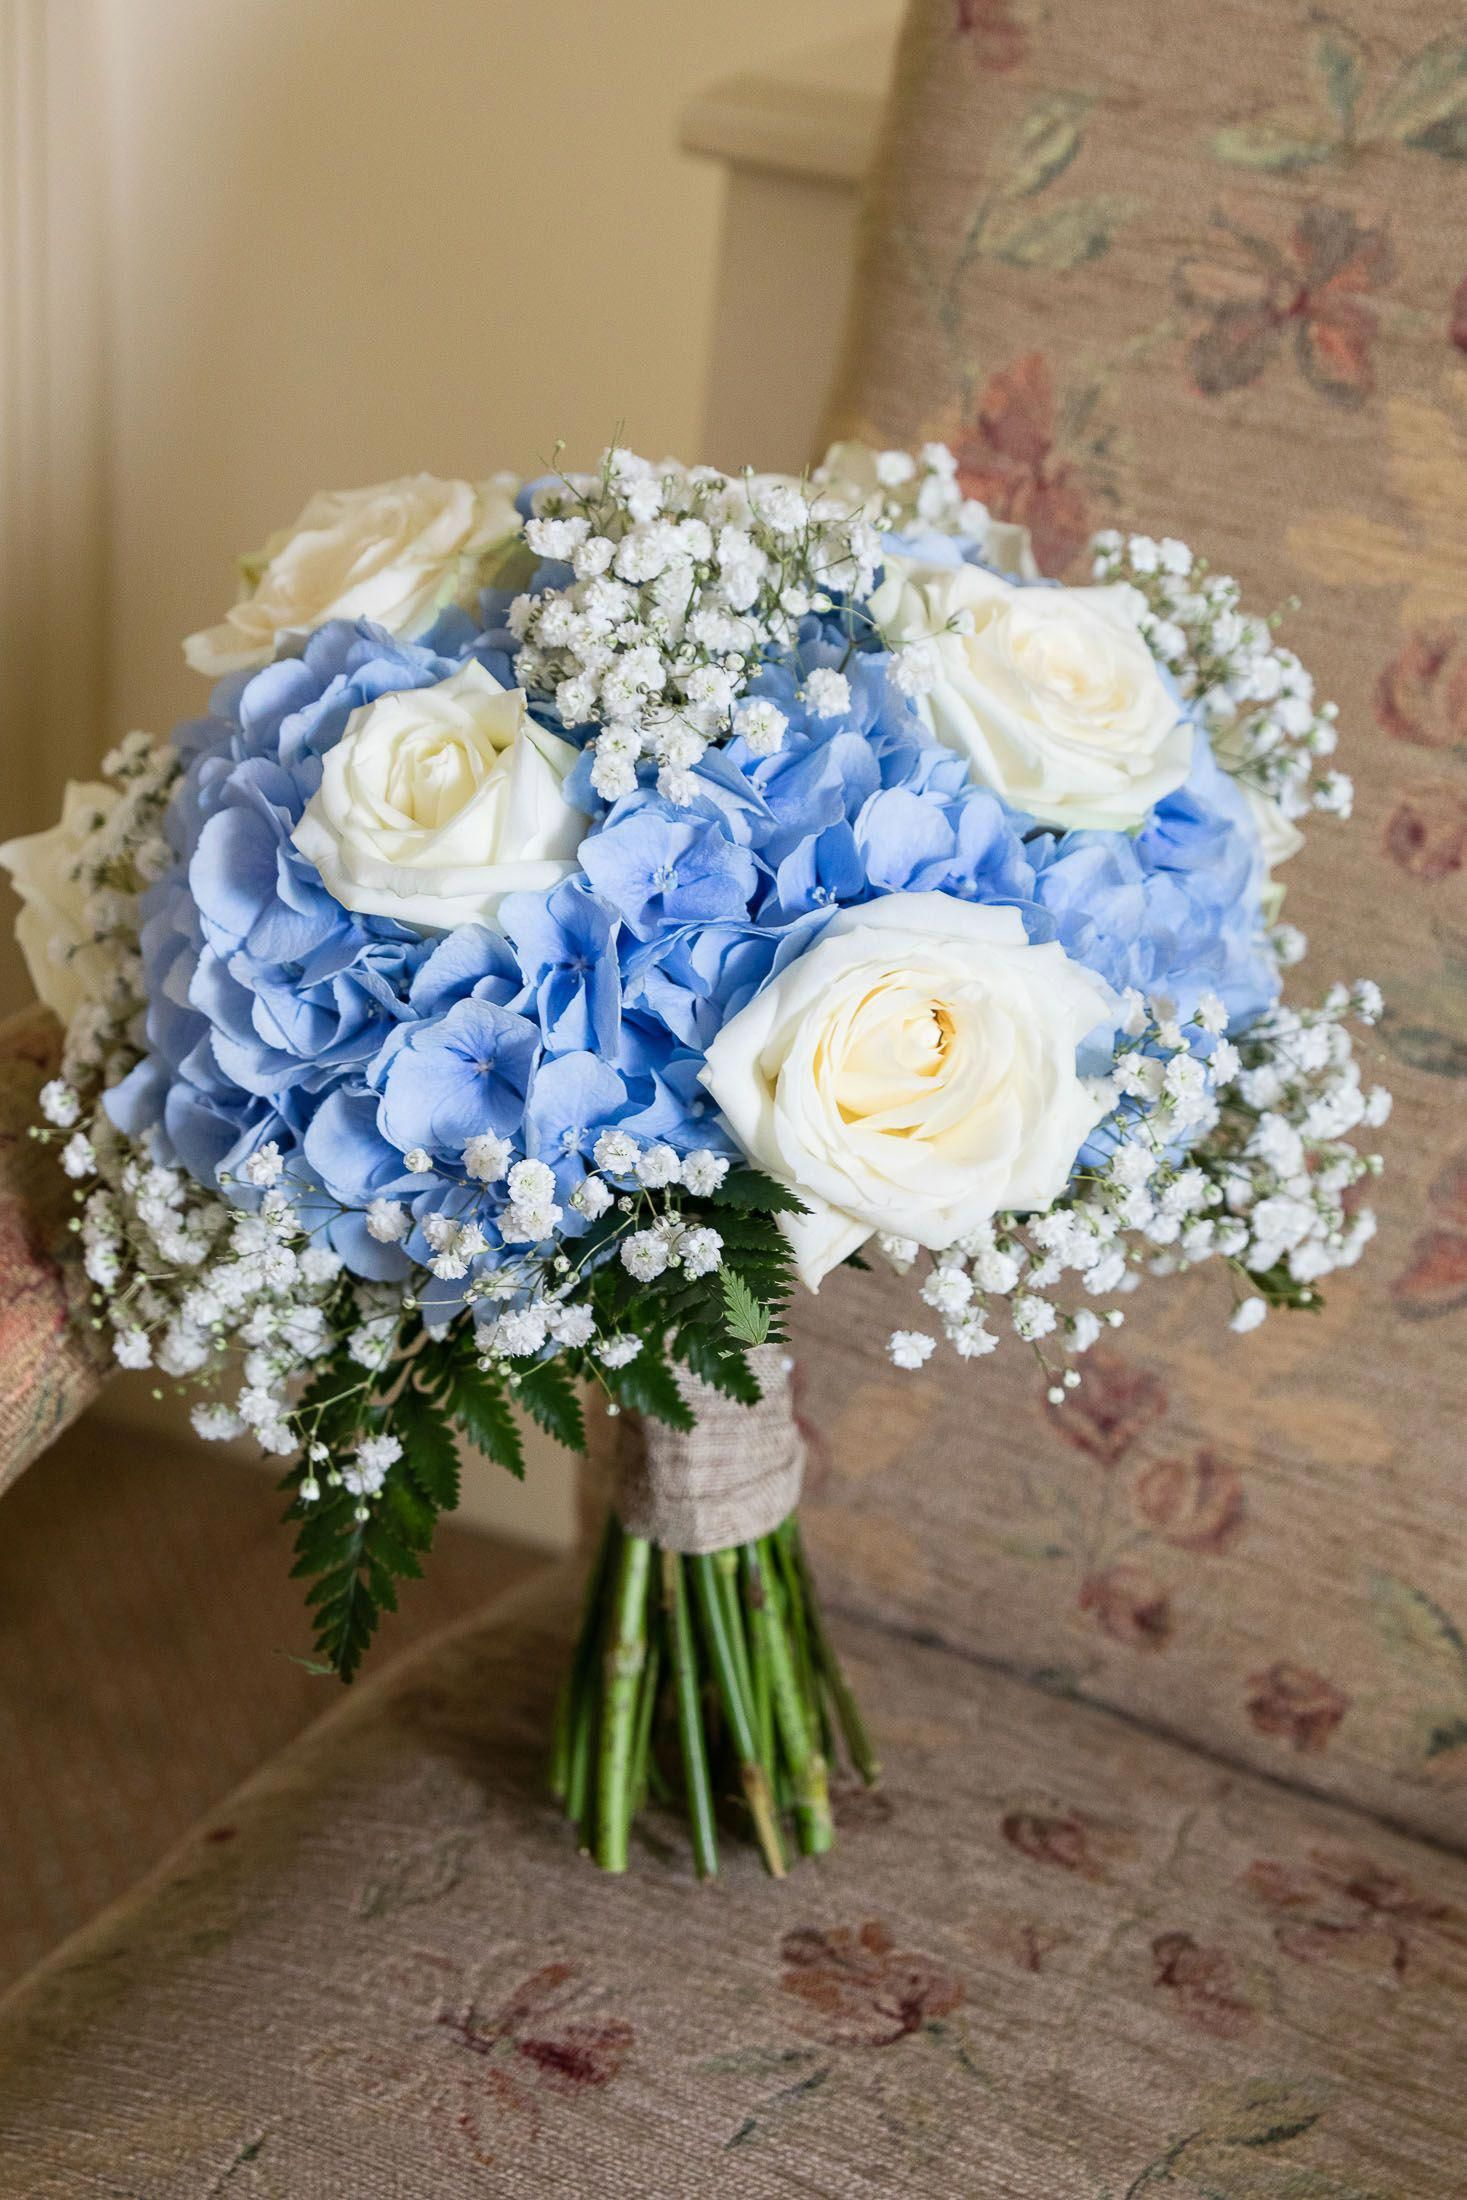 Brooklodge Wedding Bride Bouquet Blue And White Roses And Hydrangeas Blue Wedding Bouquet Hydrangeas Wedding Blue Wedding Flowers